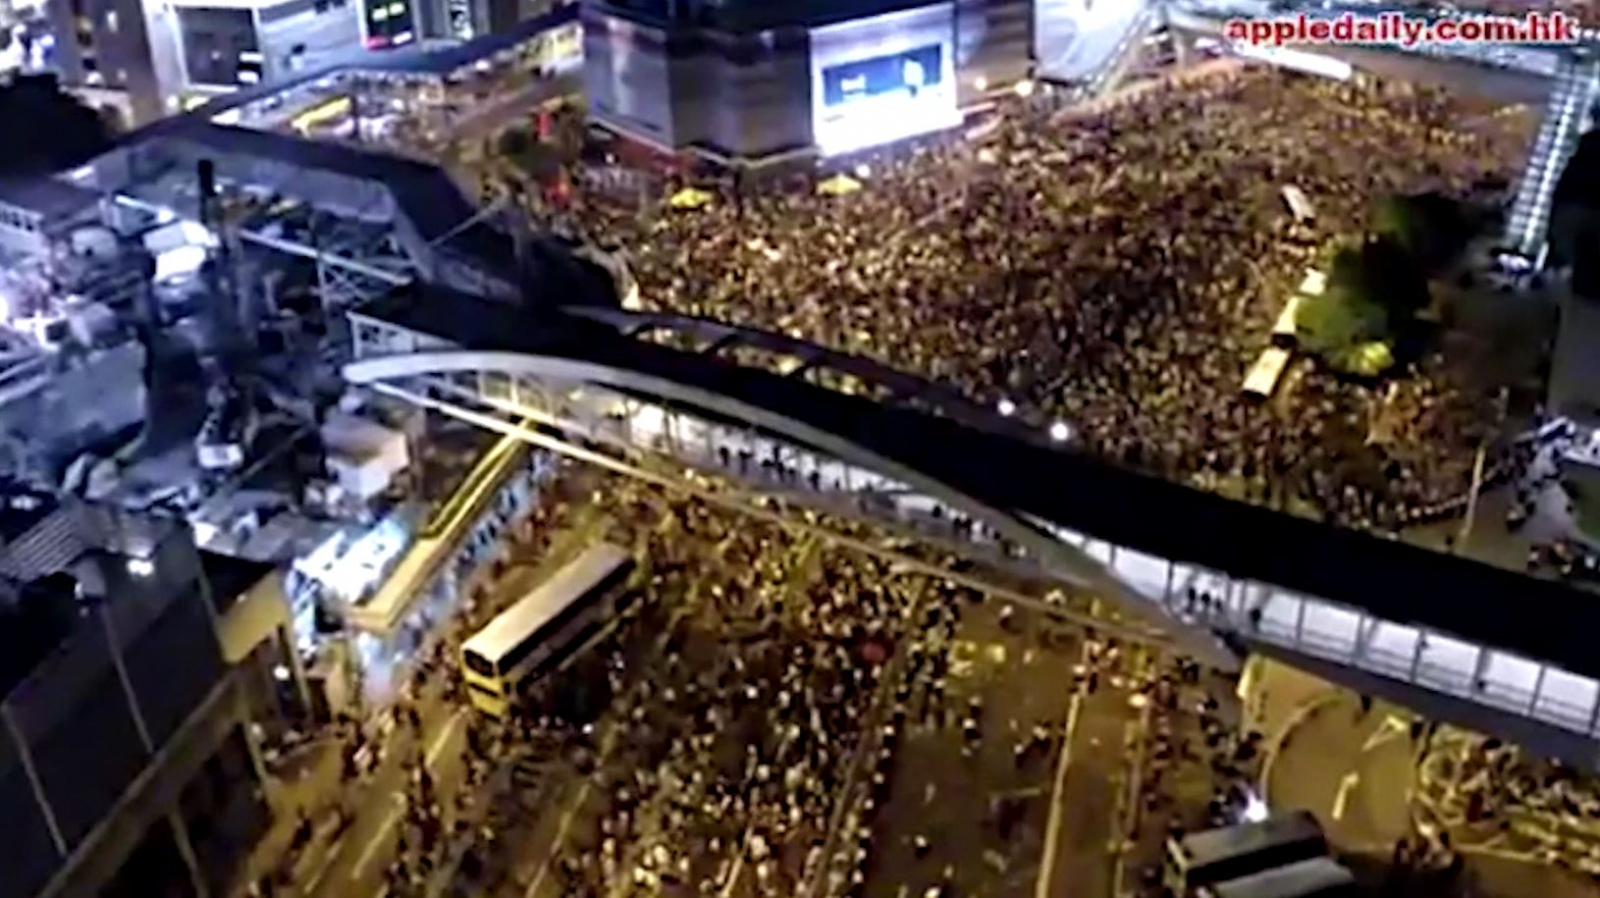 Flying Drones Capture Dramatic Scale of Hong Kong 'Occupy Central' Protests on Video